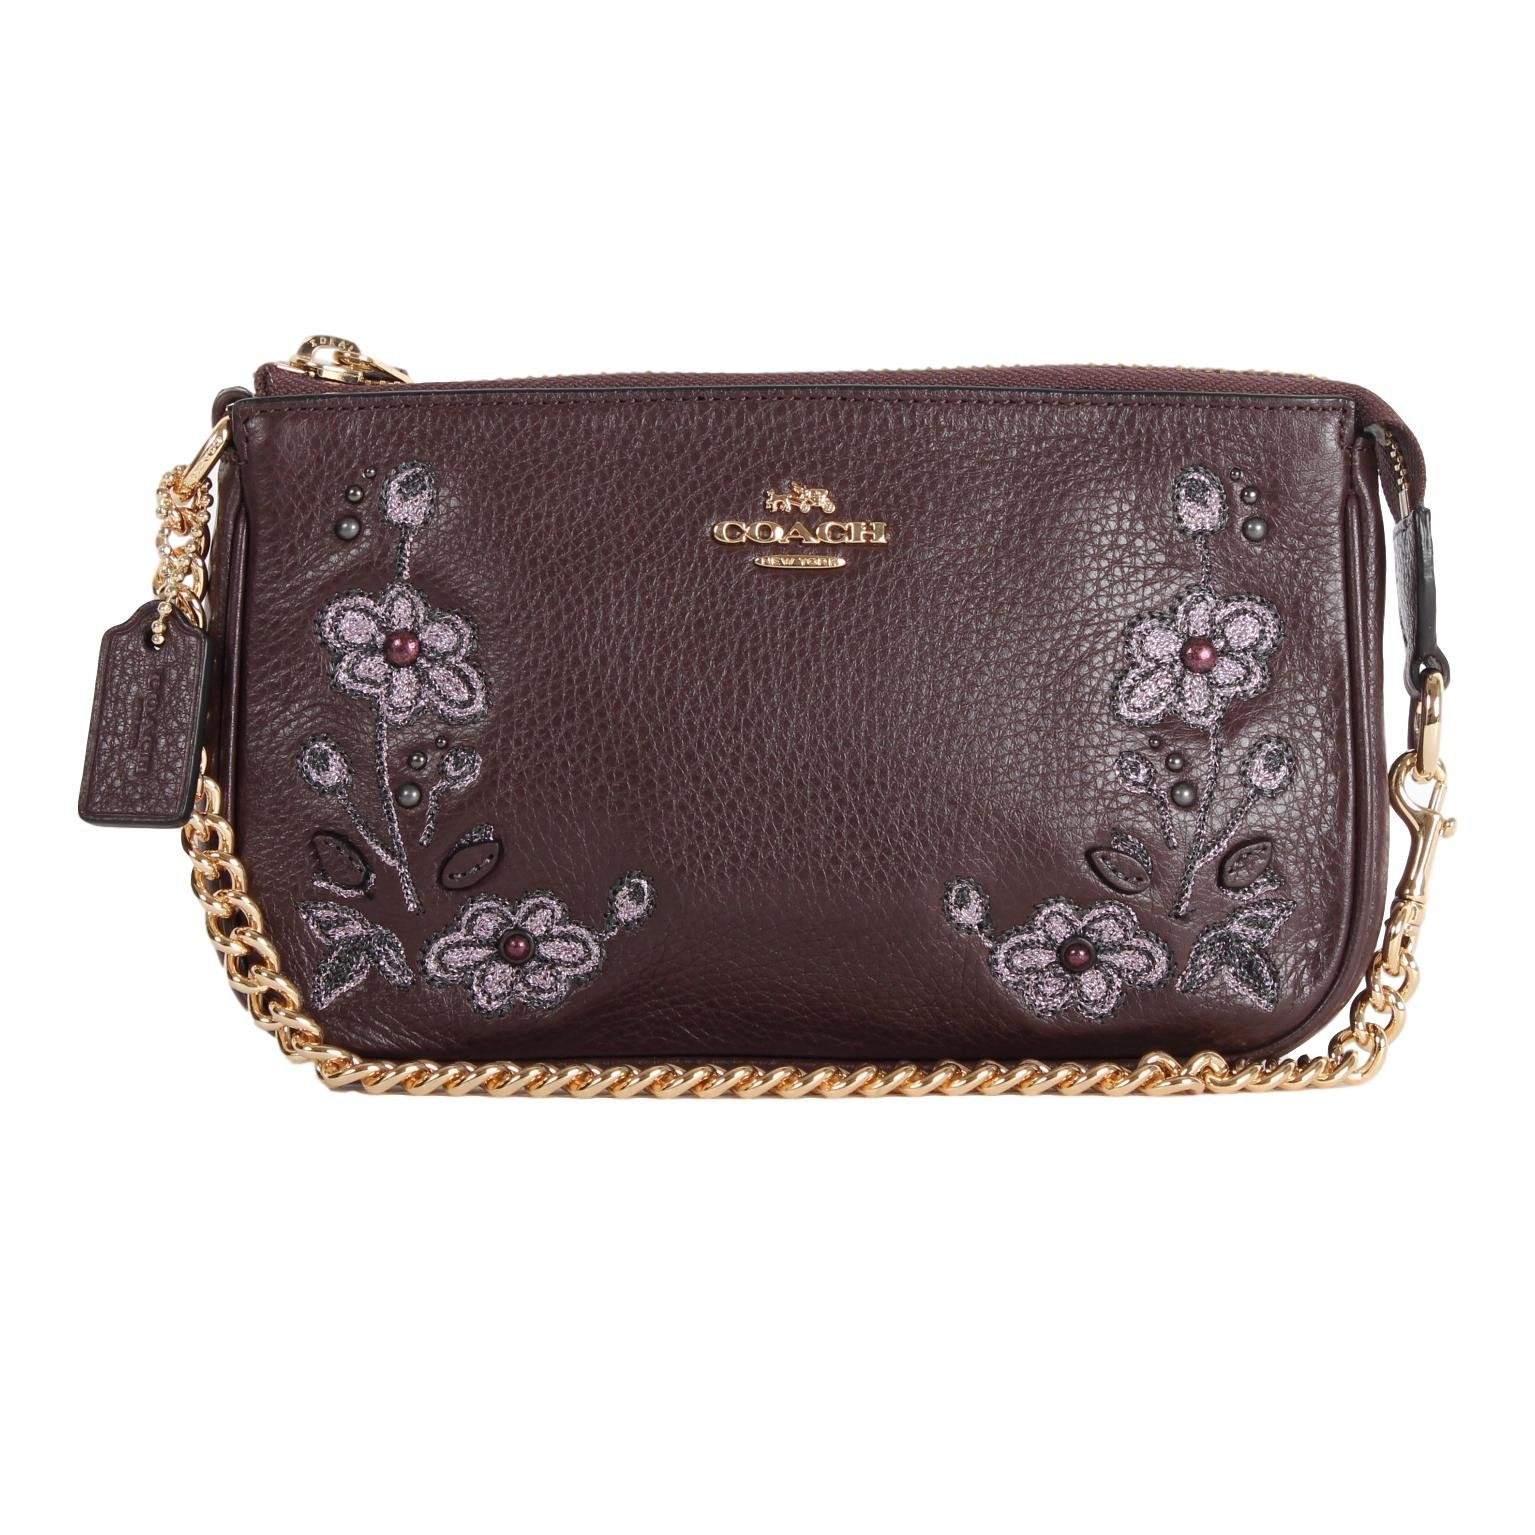 COACH F11882 FLORAL EMBROIDERED LEATHER LARGE WRISTLET 19 CLUTCH by Coach